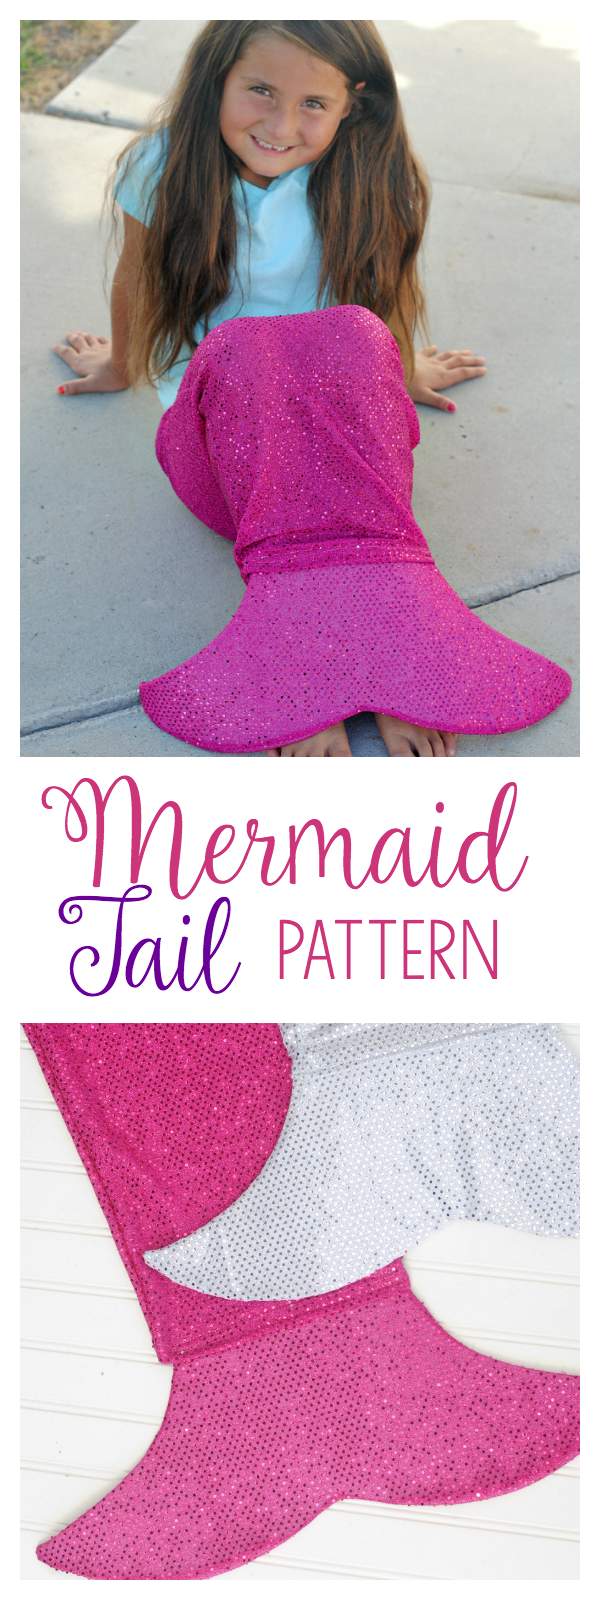 Mermaid Tail Pattern to sew for kids! This free mermaid tail pattern is a simple pattern, easy enough for beginners and one the kids are sure to love. #sewing #patterns #kids